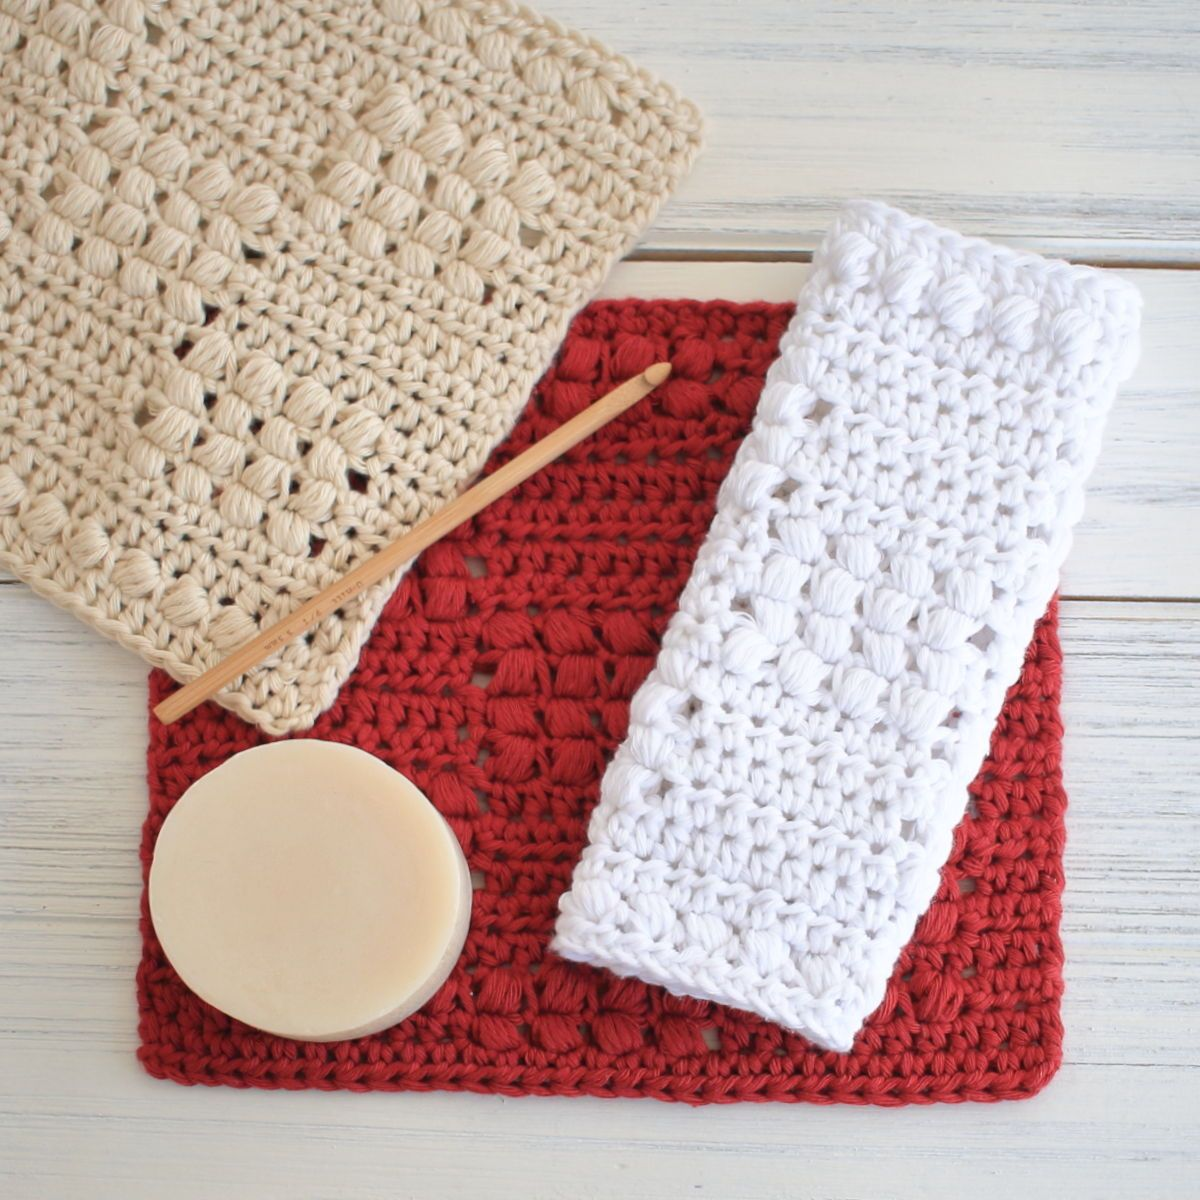 120 Free Crochet Patterns That Are Perfect For Beginners Diy Crafts